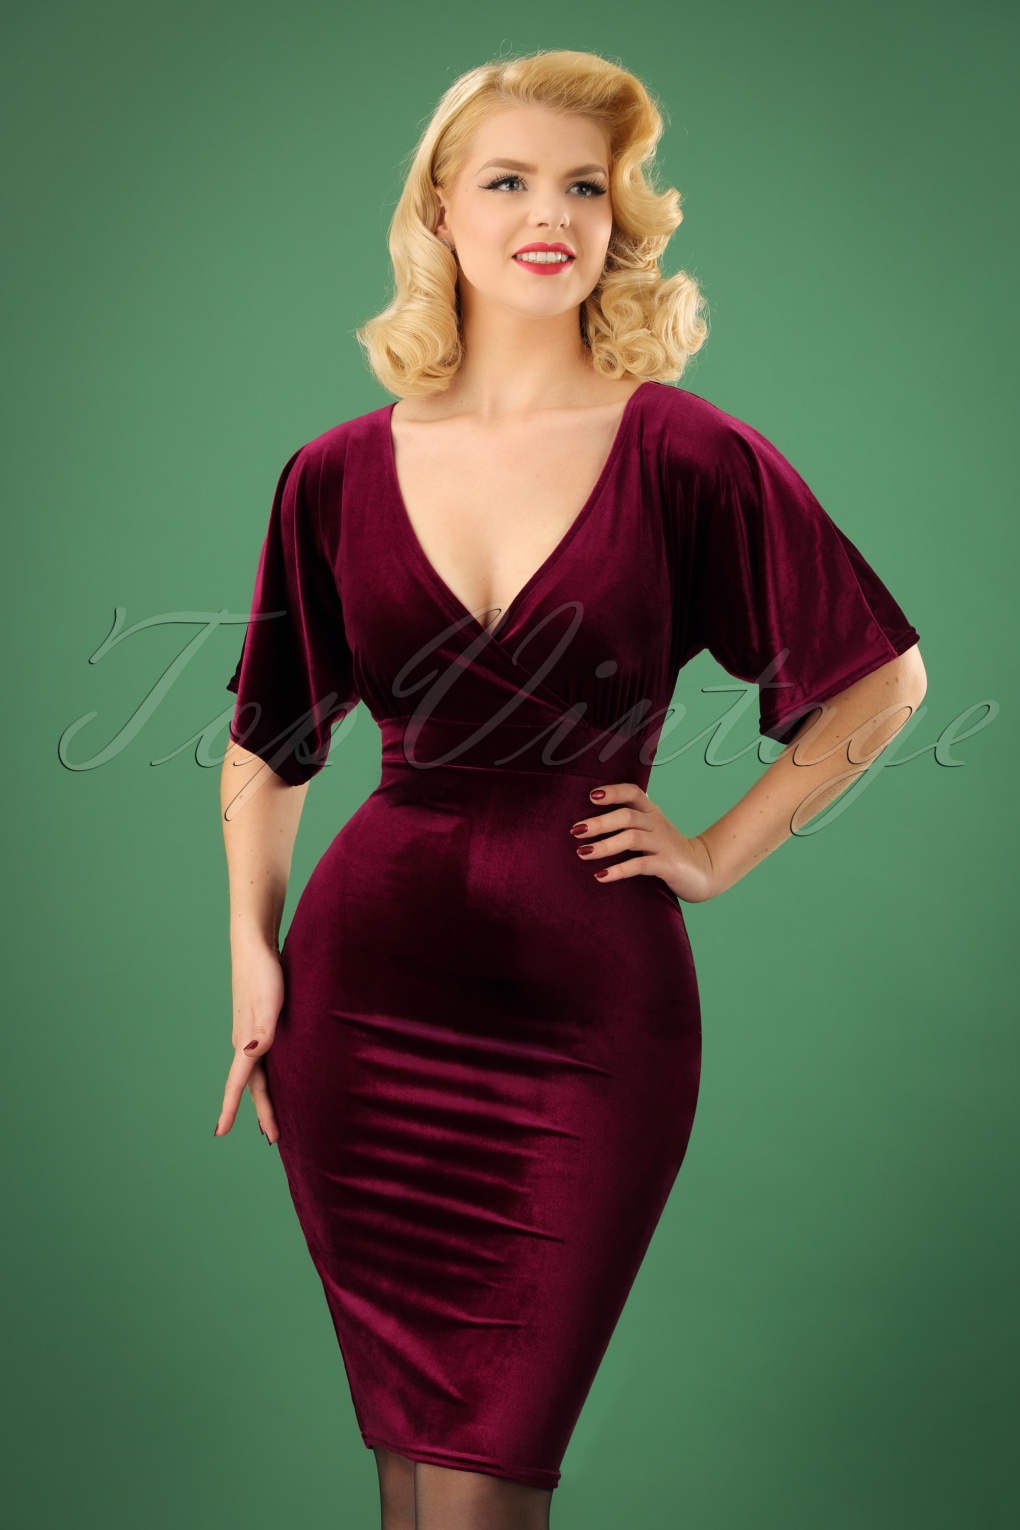 1950s Dresses, 50s Dresses | 1950s Style Dresses 50s Viva Velvet Cross Pencil Dress in Claret £48.87 AT vintagedancer.com